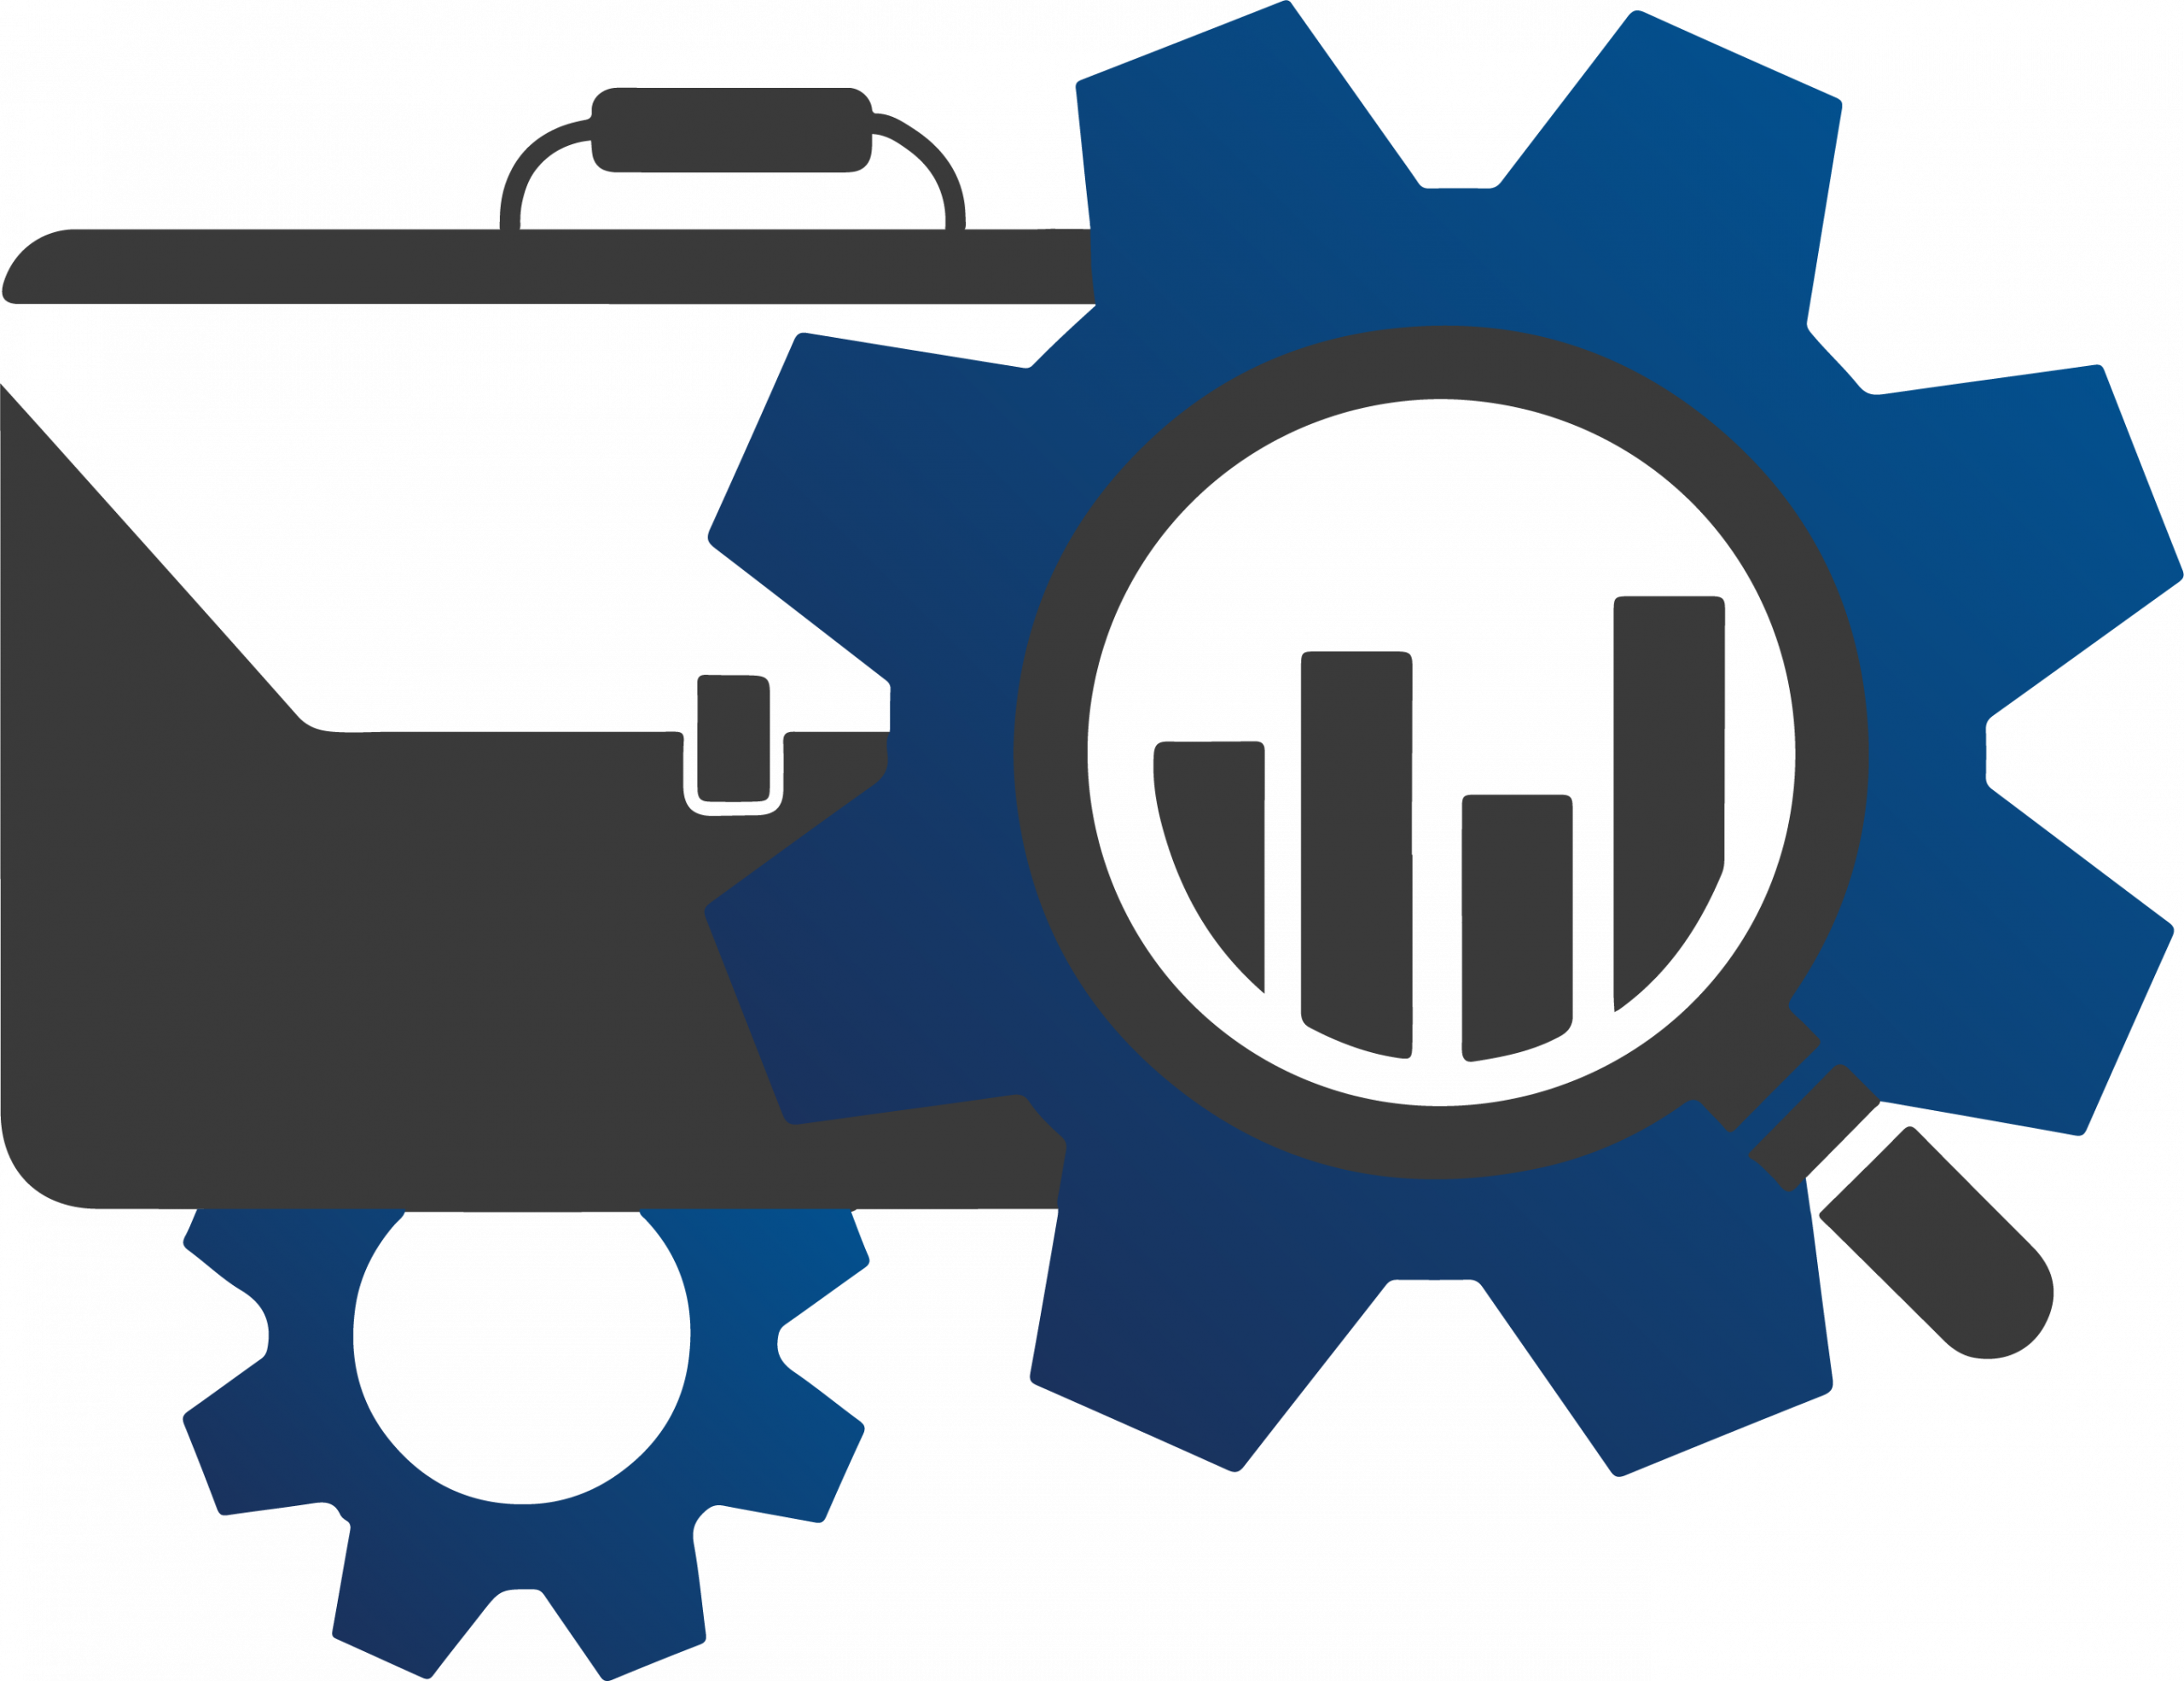 Analyse and automate business processes icon